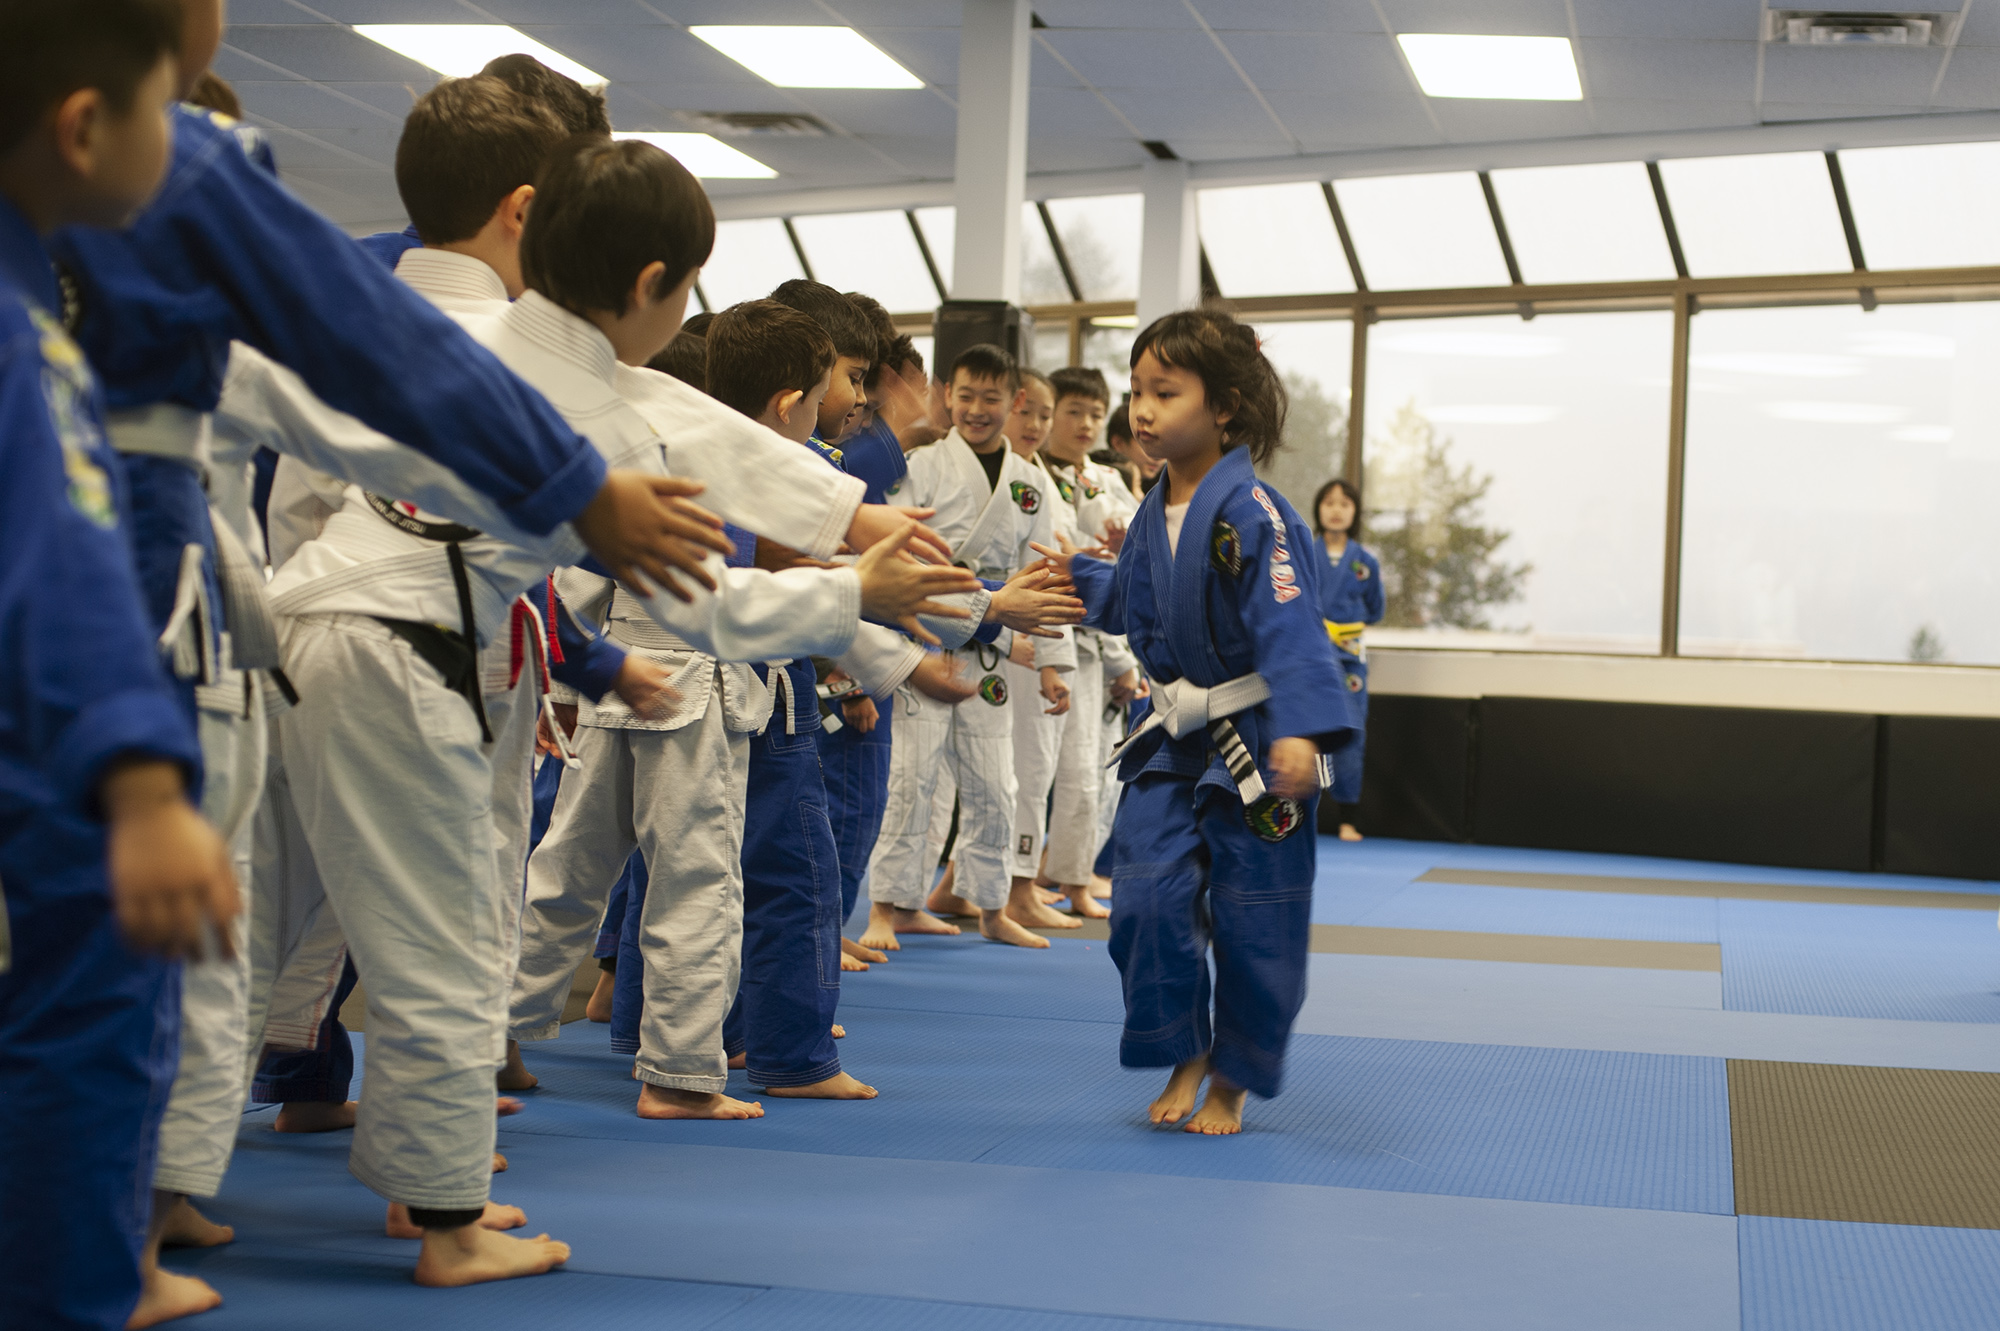 Tiny Grapplers BJJ program at GFTeam Canada in Burnaby